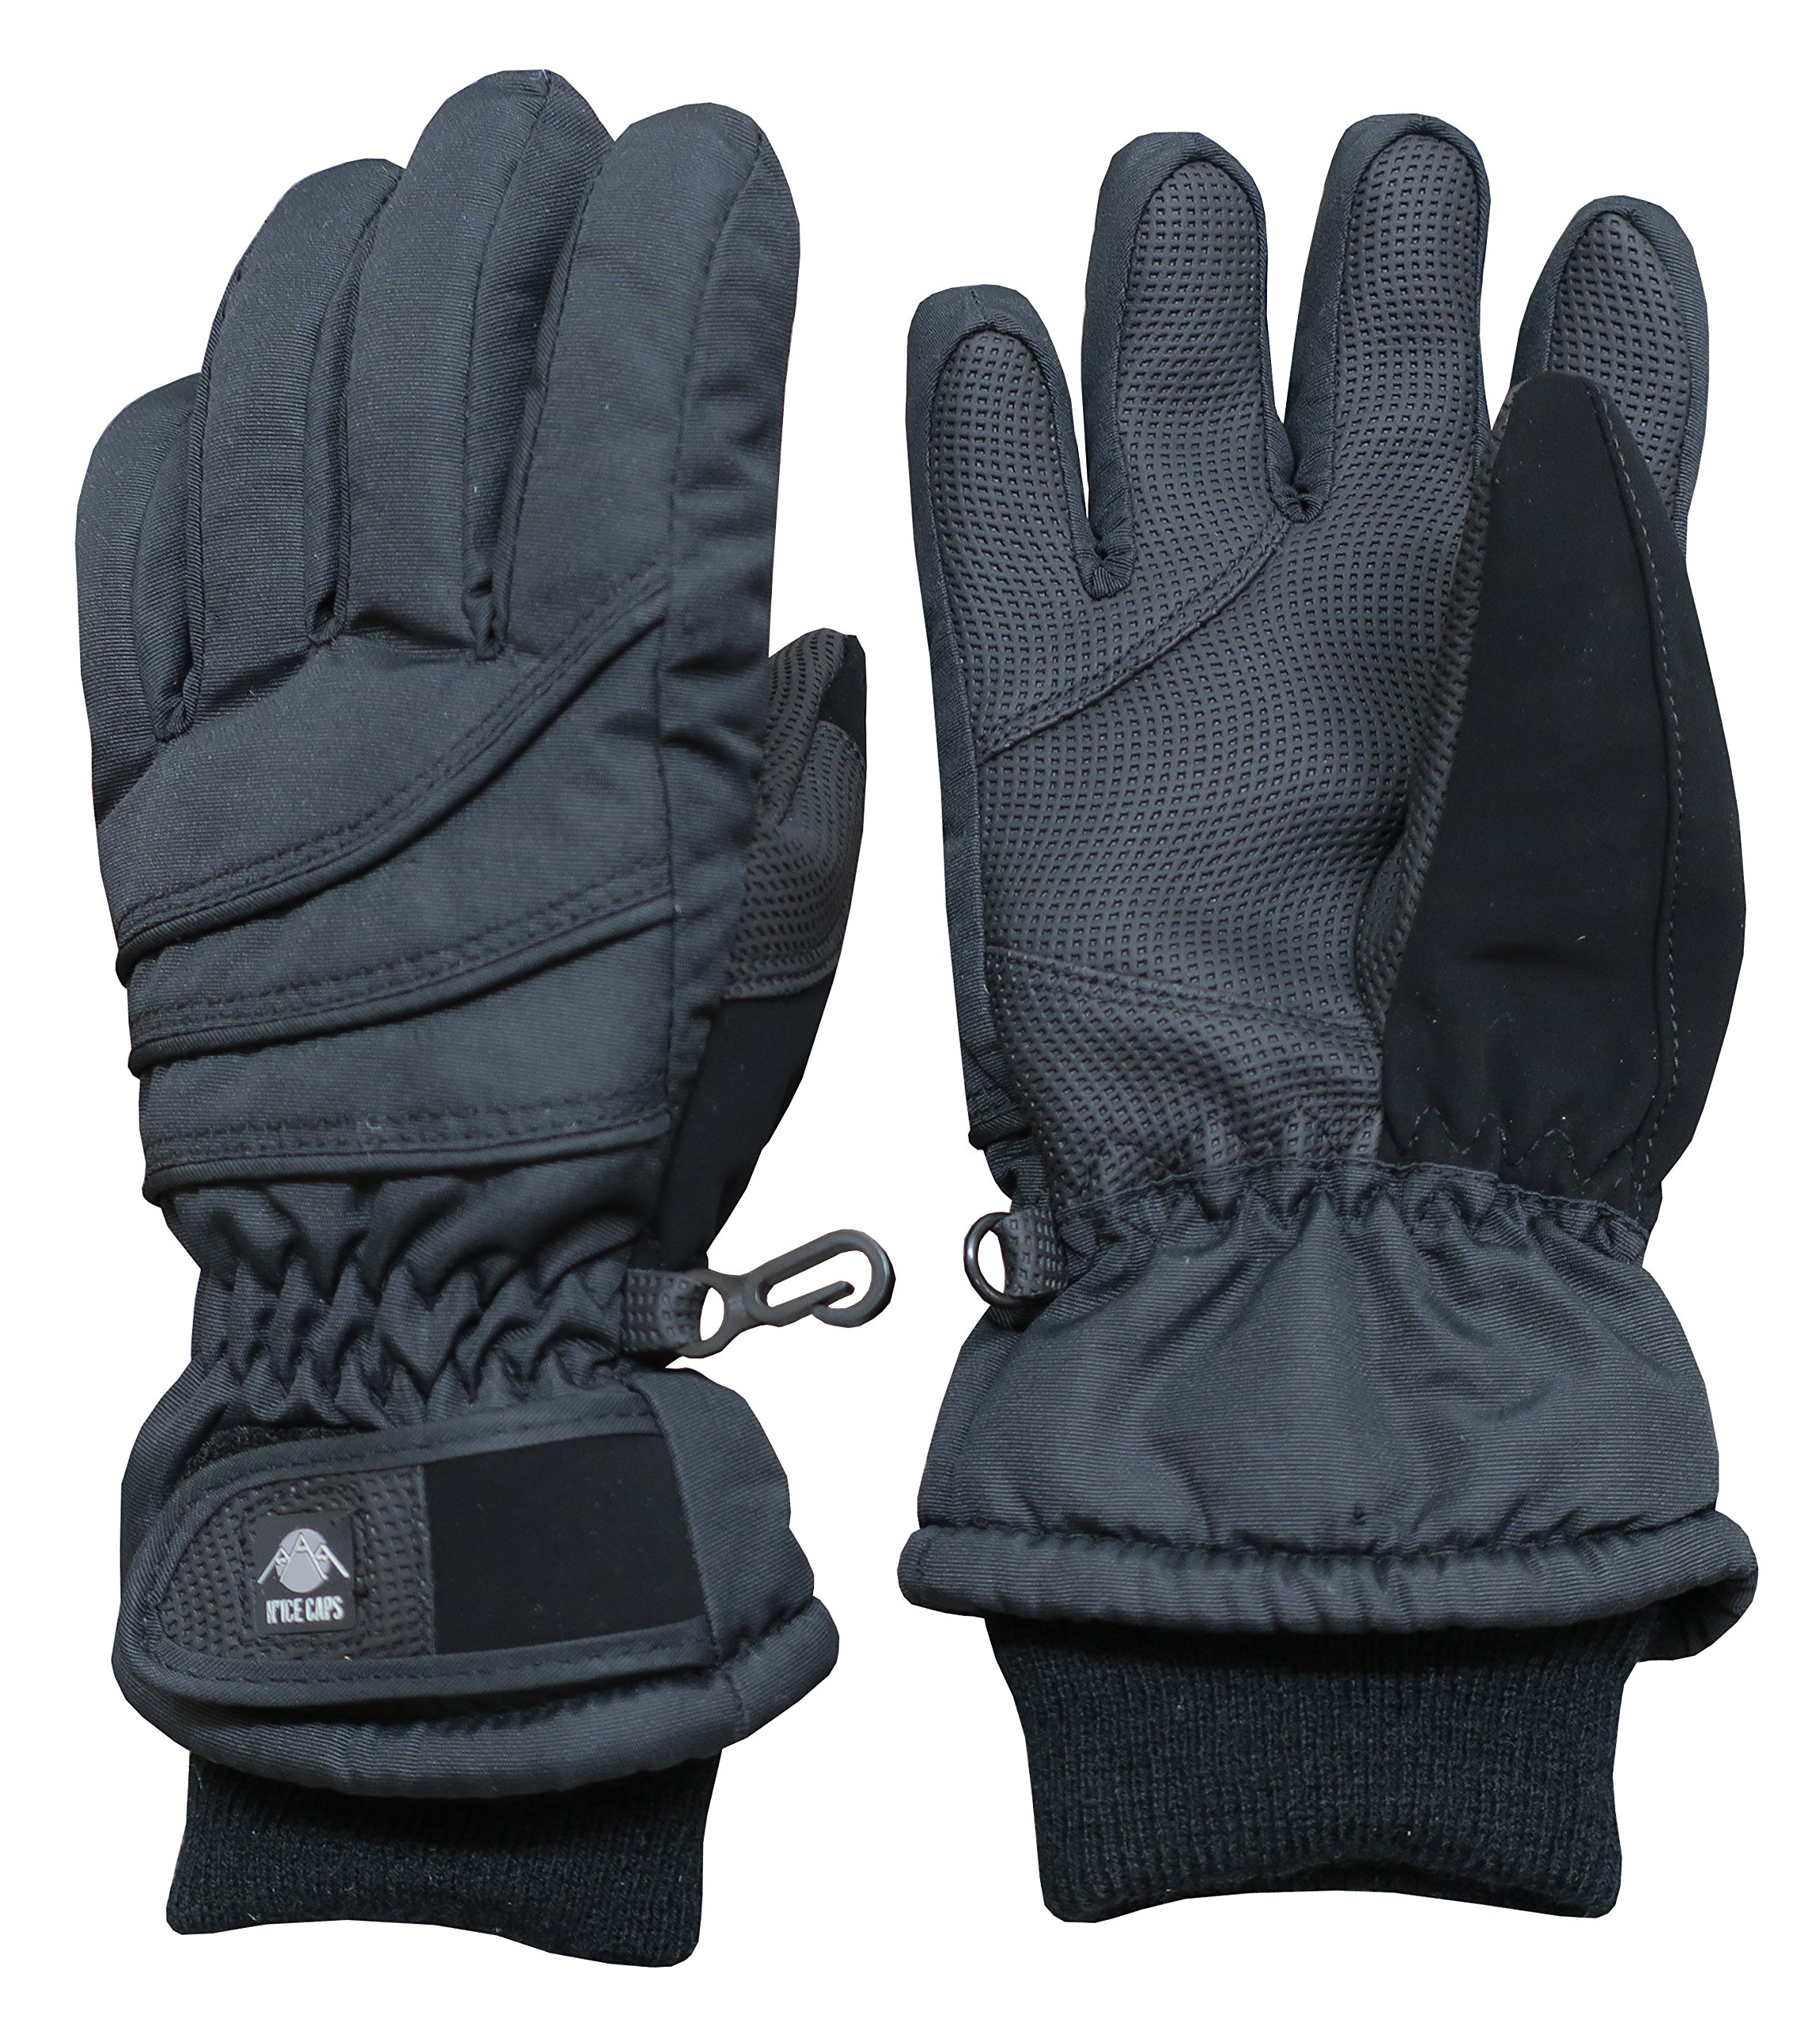 95b228324 N'Ice Caps Womens Winter Snow & Cold Utility Waterproof Thinsulate Gloves  product image